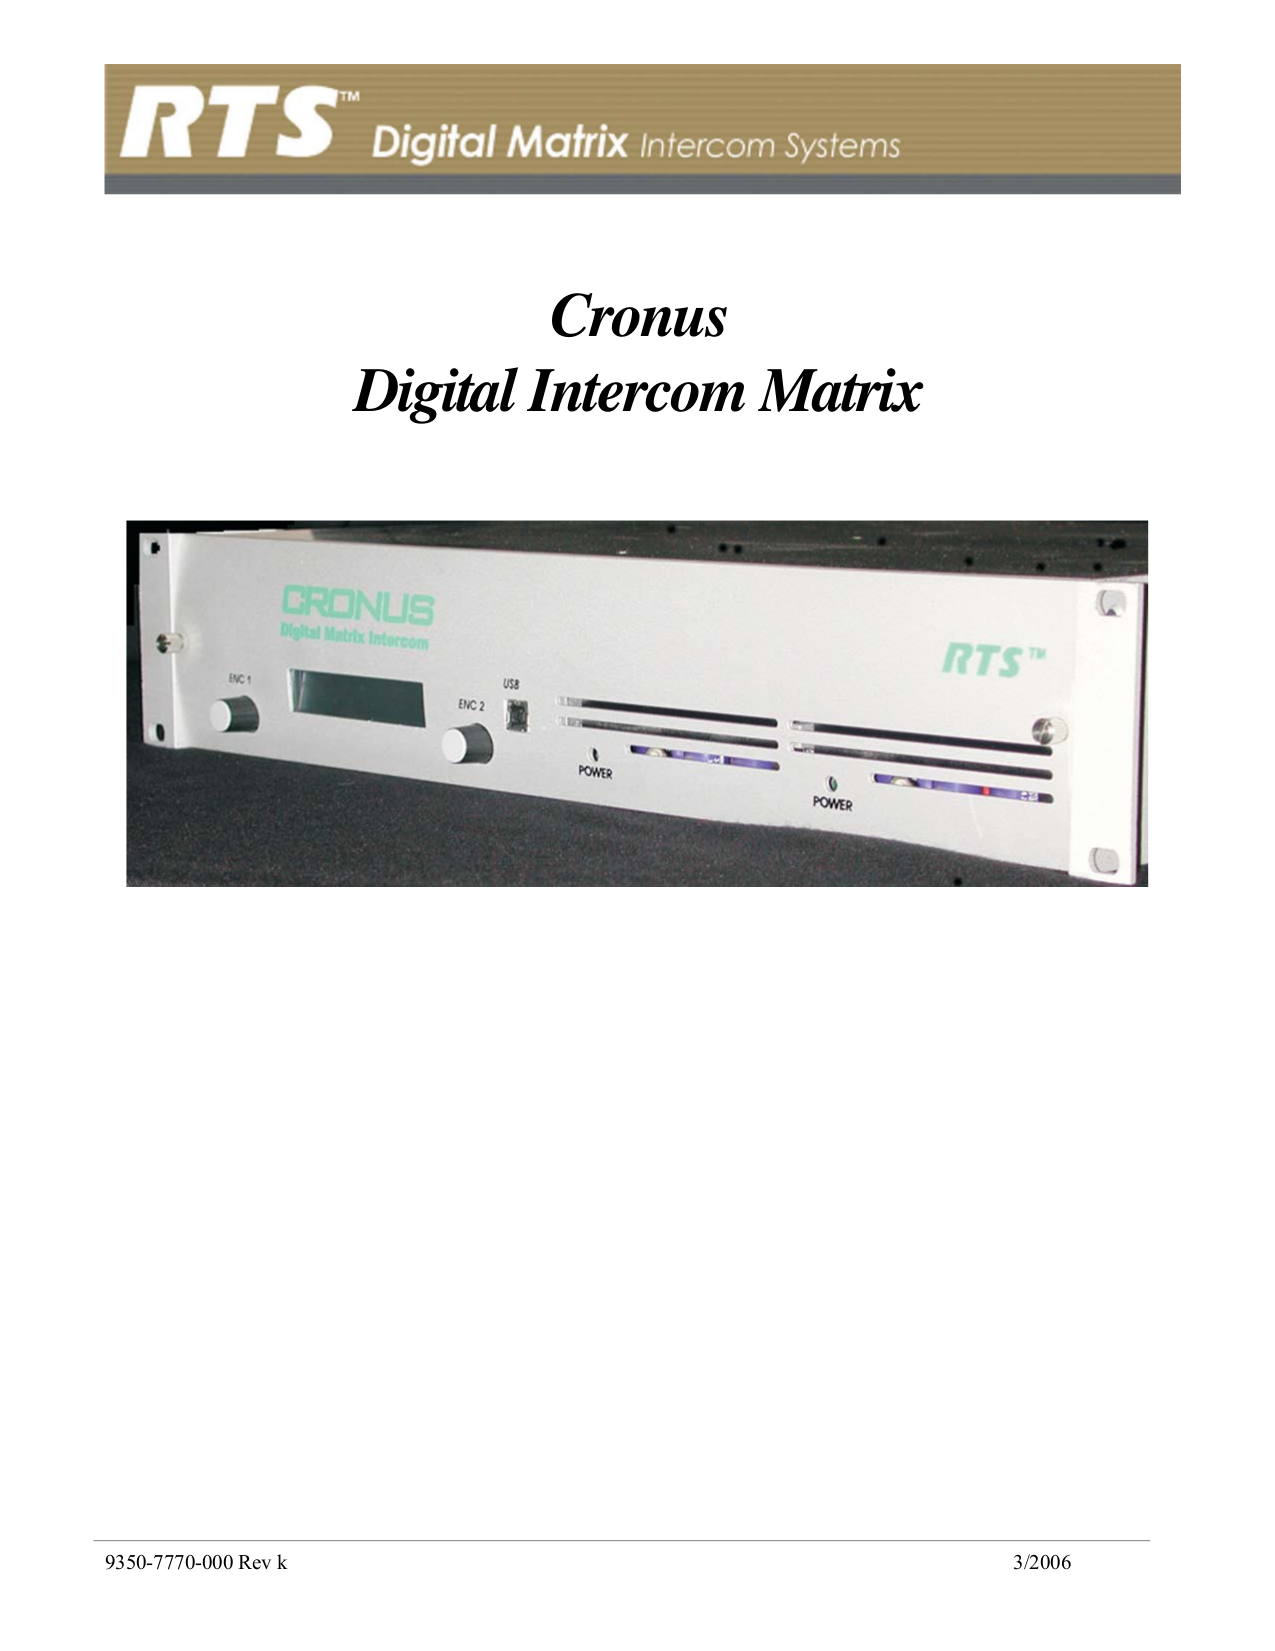 pdf for Telex Other XCP-32-DB9 IntercomSystem manual